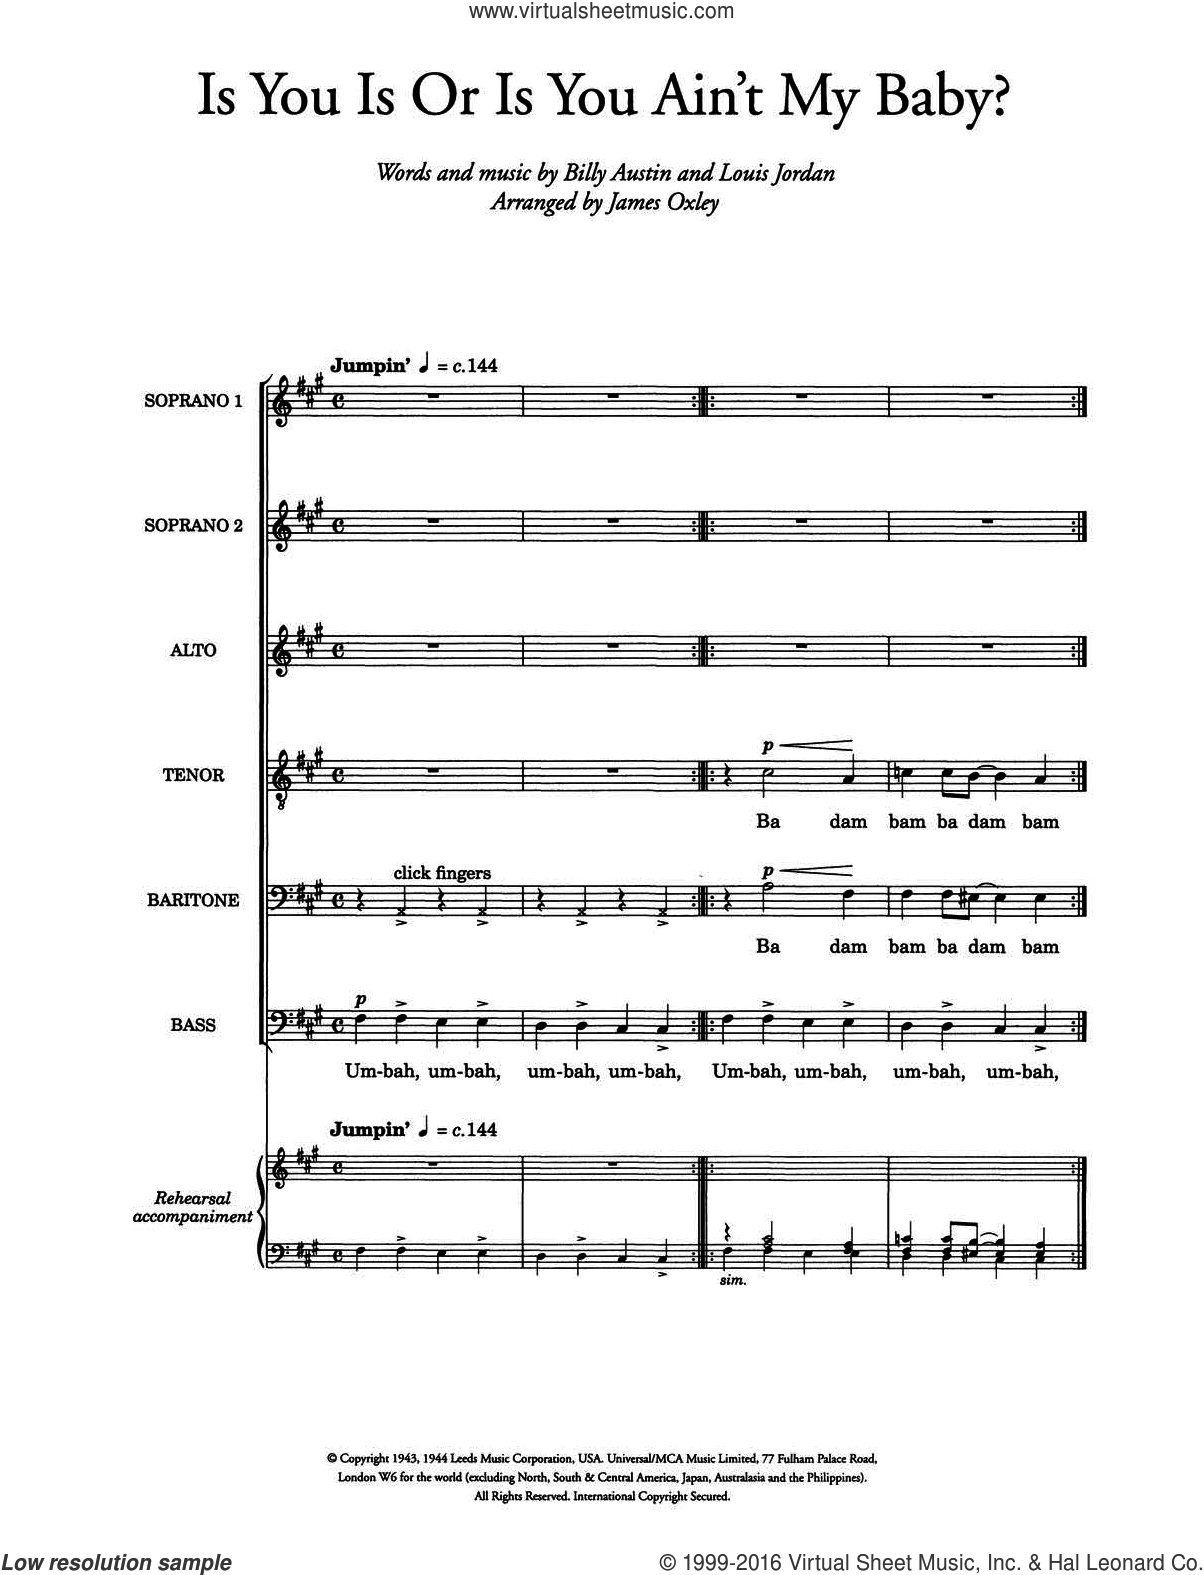 Is You Is, Or Is You Ain't (Ma' Baby) (arr. James Oxley) sheet music for voice, piano or guitar by Louis Jordan, James Oxley and Billy Austin, intermediate skill level